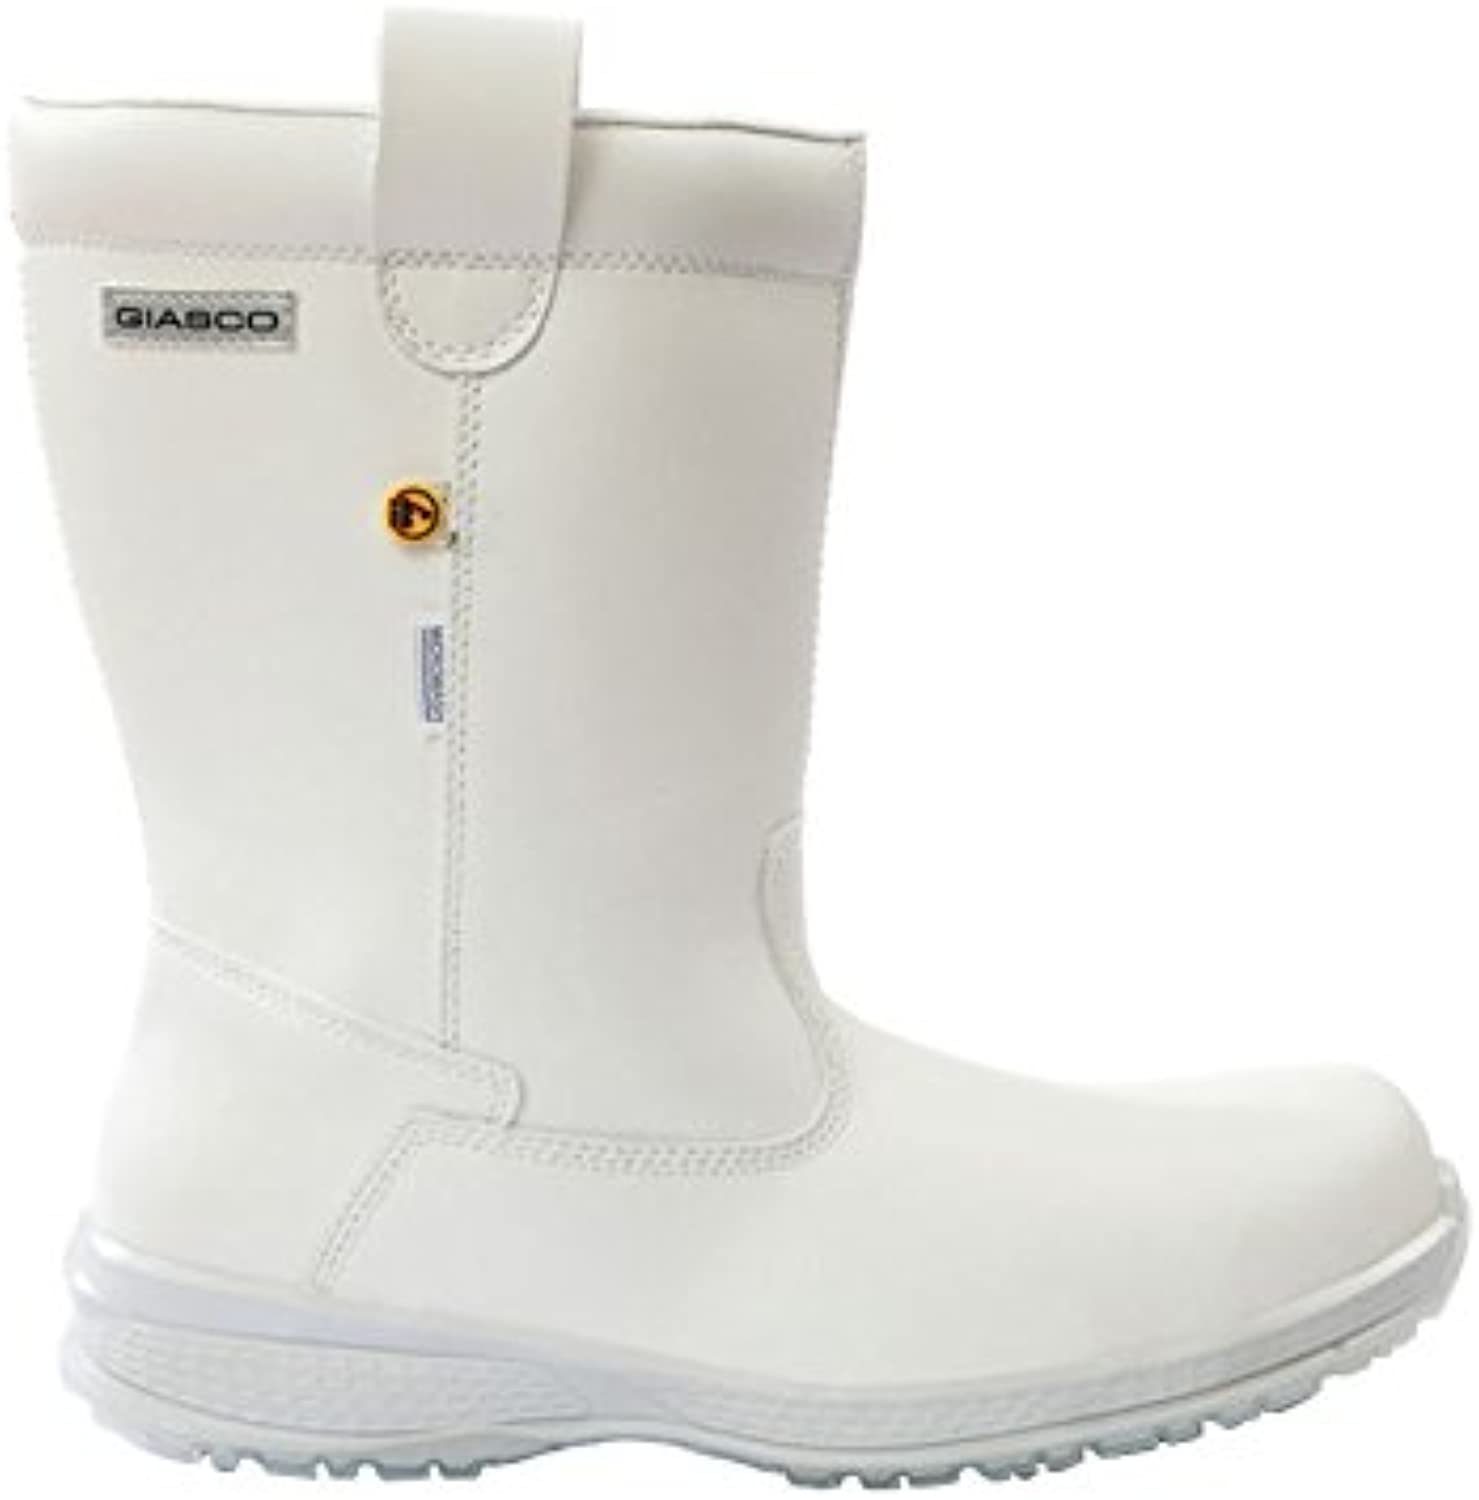 Giasco ku011i44 Calf Boot, Iceberg, S2, tamaño: US 9,5/tamaño UK: 44, color blanco